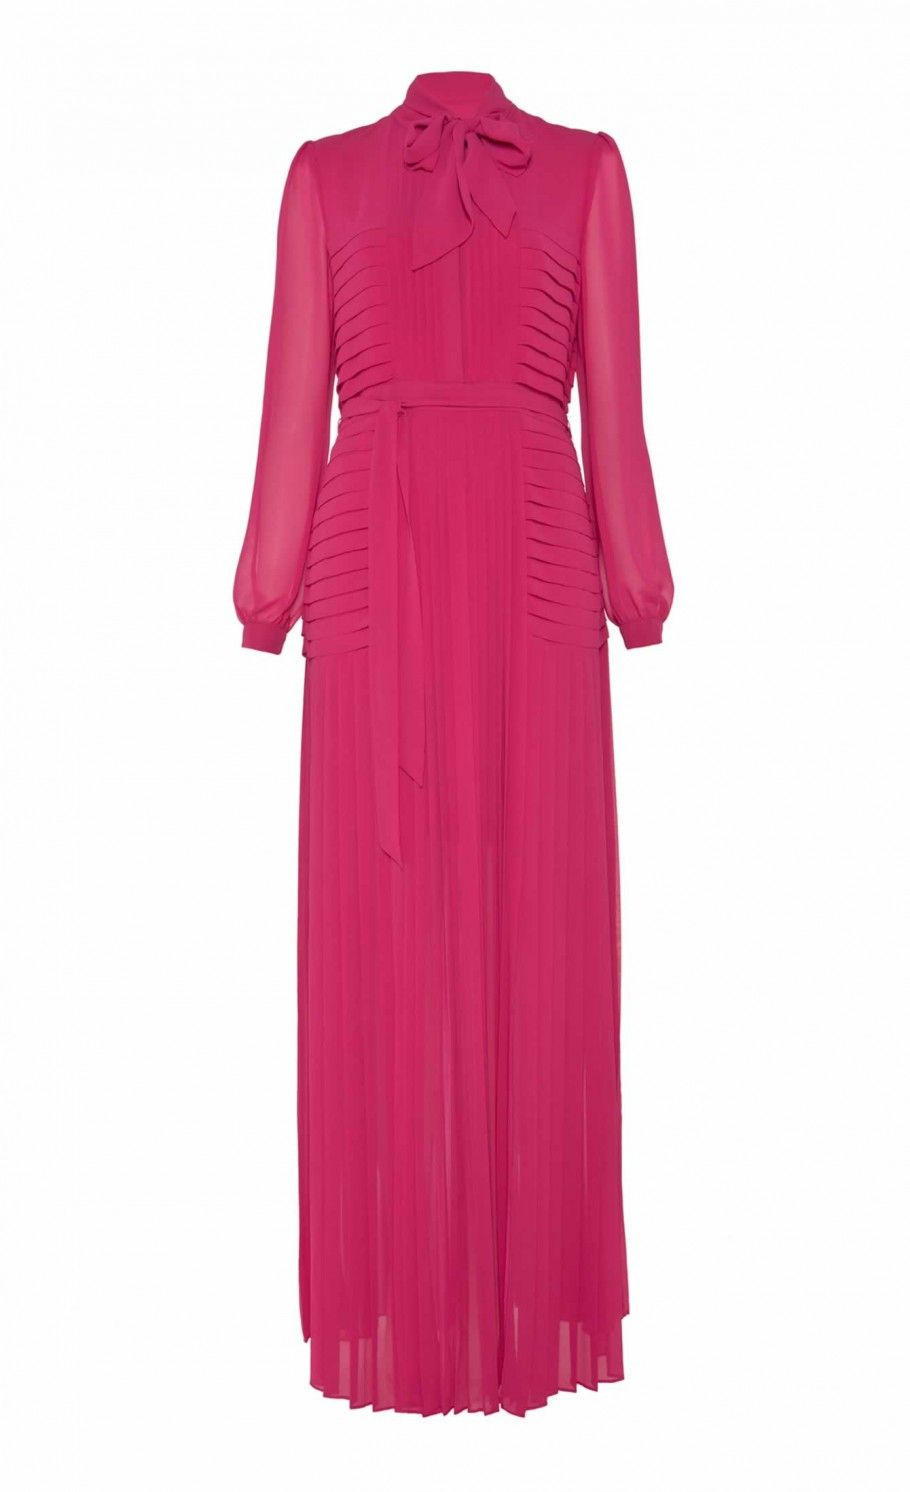 Long Rose Pleated Dress | Full Length Dresses | Temperley London.  I love Alice Temperley but can't decide if this is very pretty or too 1970s.